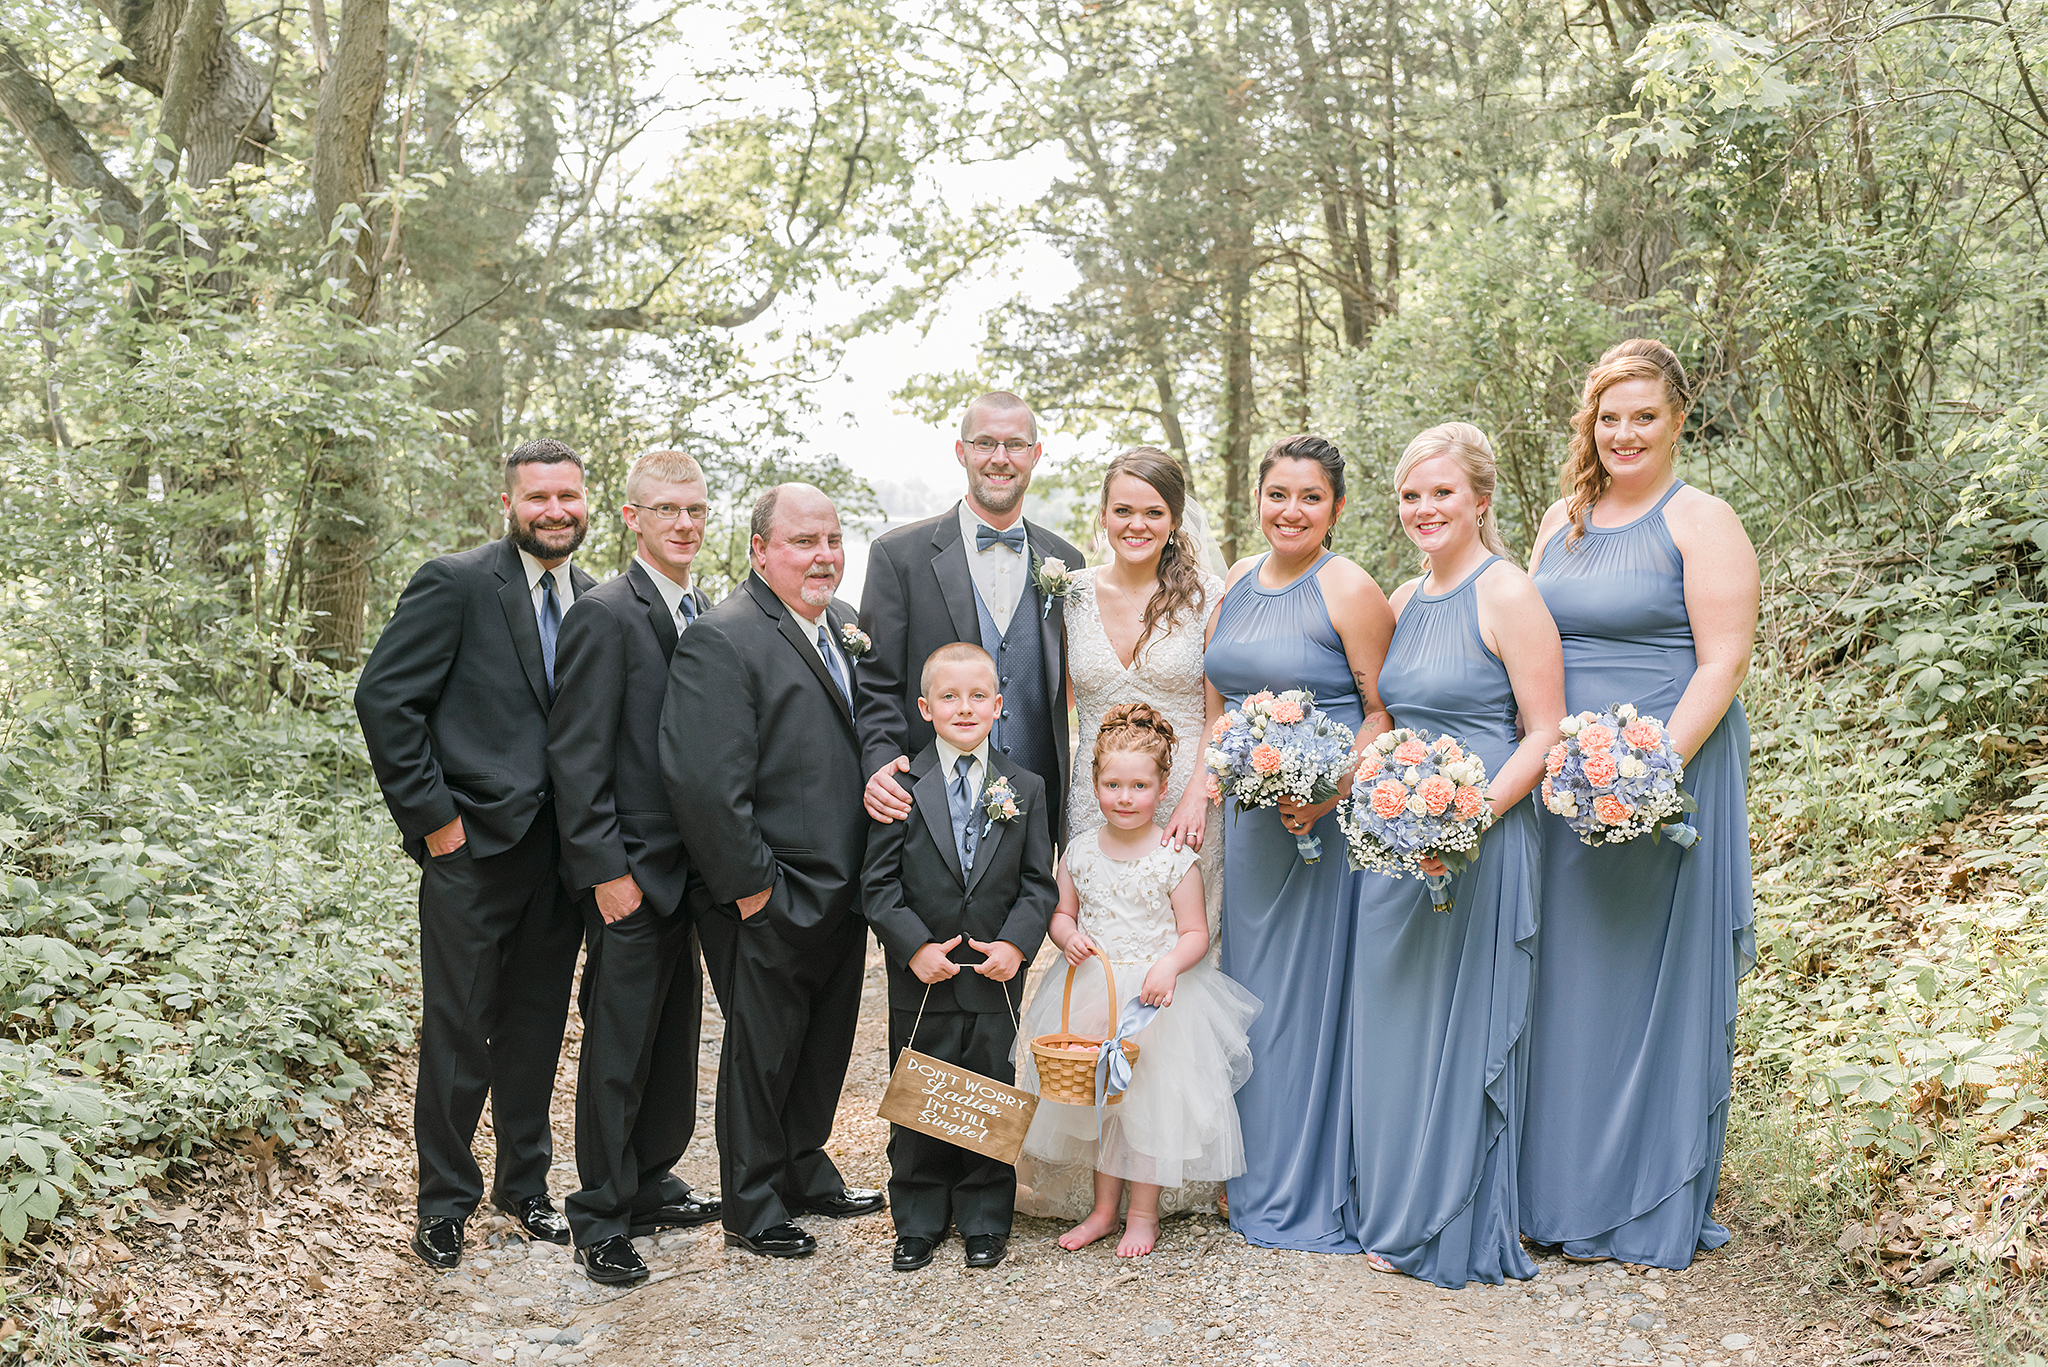 Lindsay-Adkins-Photography-Michigan-Wedding-Photographer-Sauk-Valley-Brooklyn-Michigan35